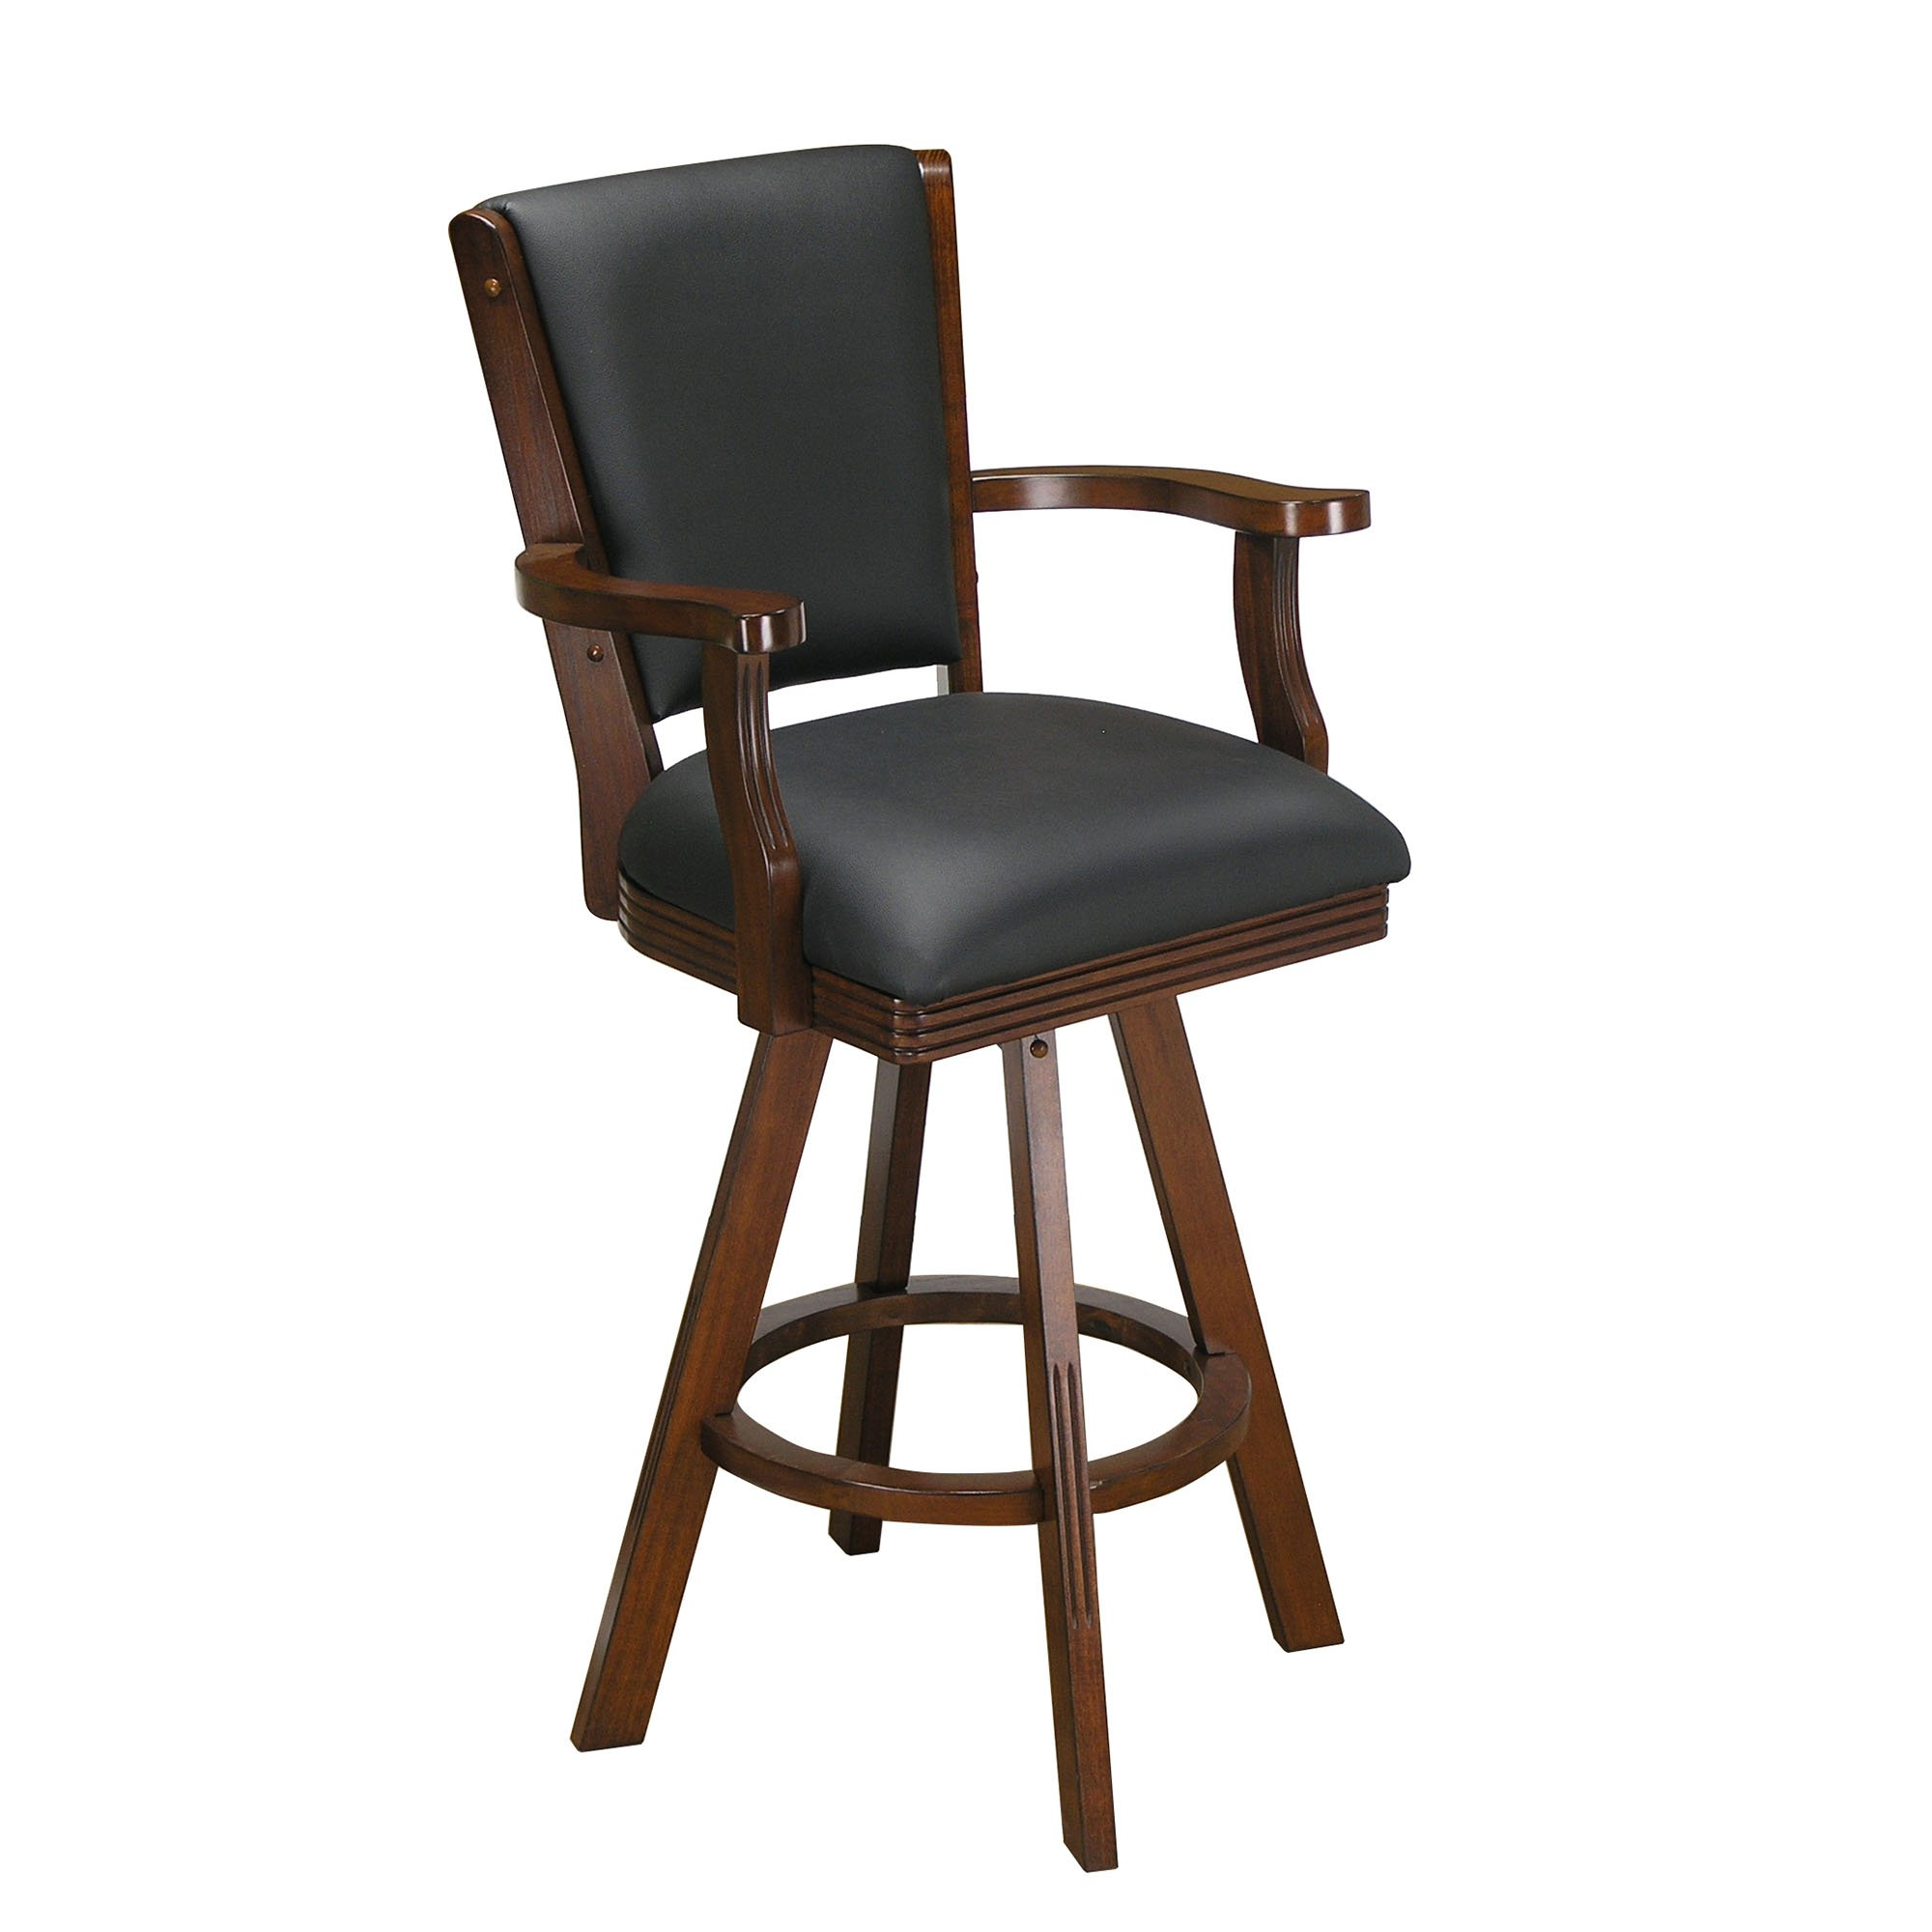 Signature Barstool for the Game Room (Chestnut)